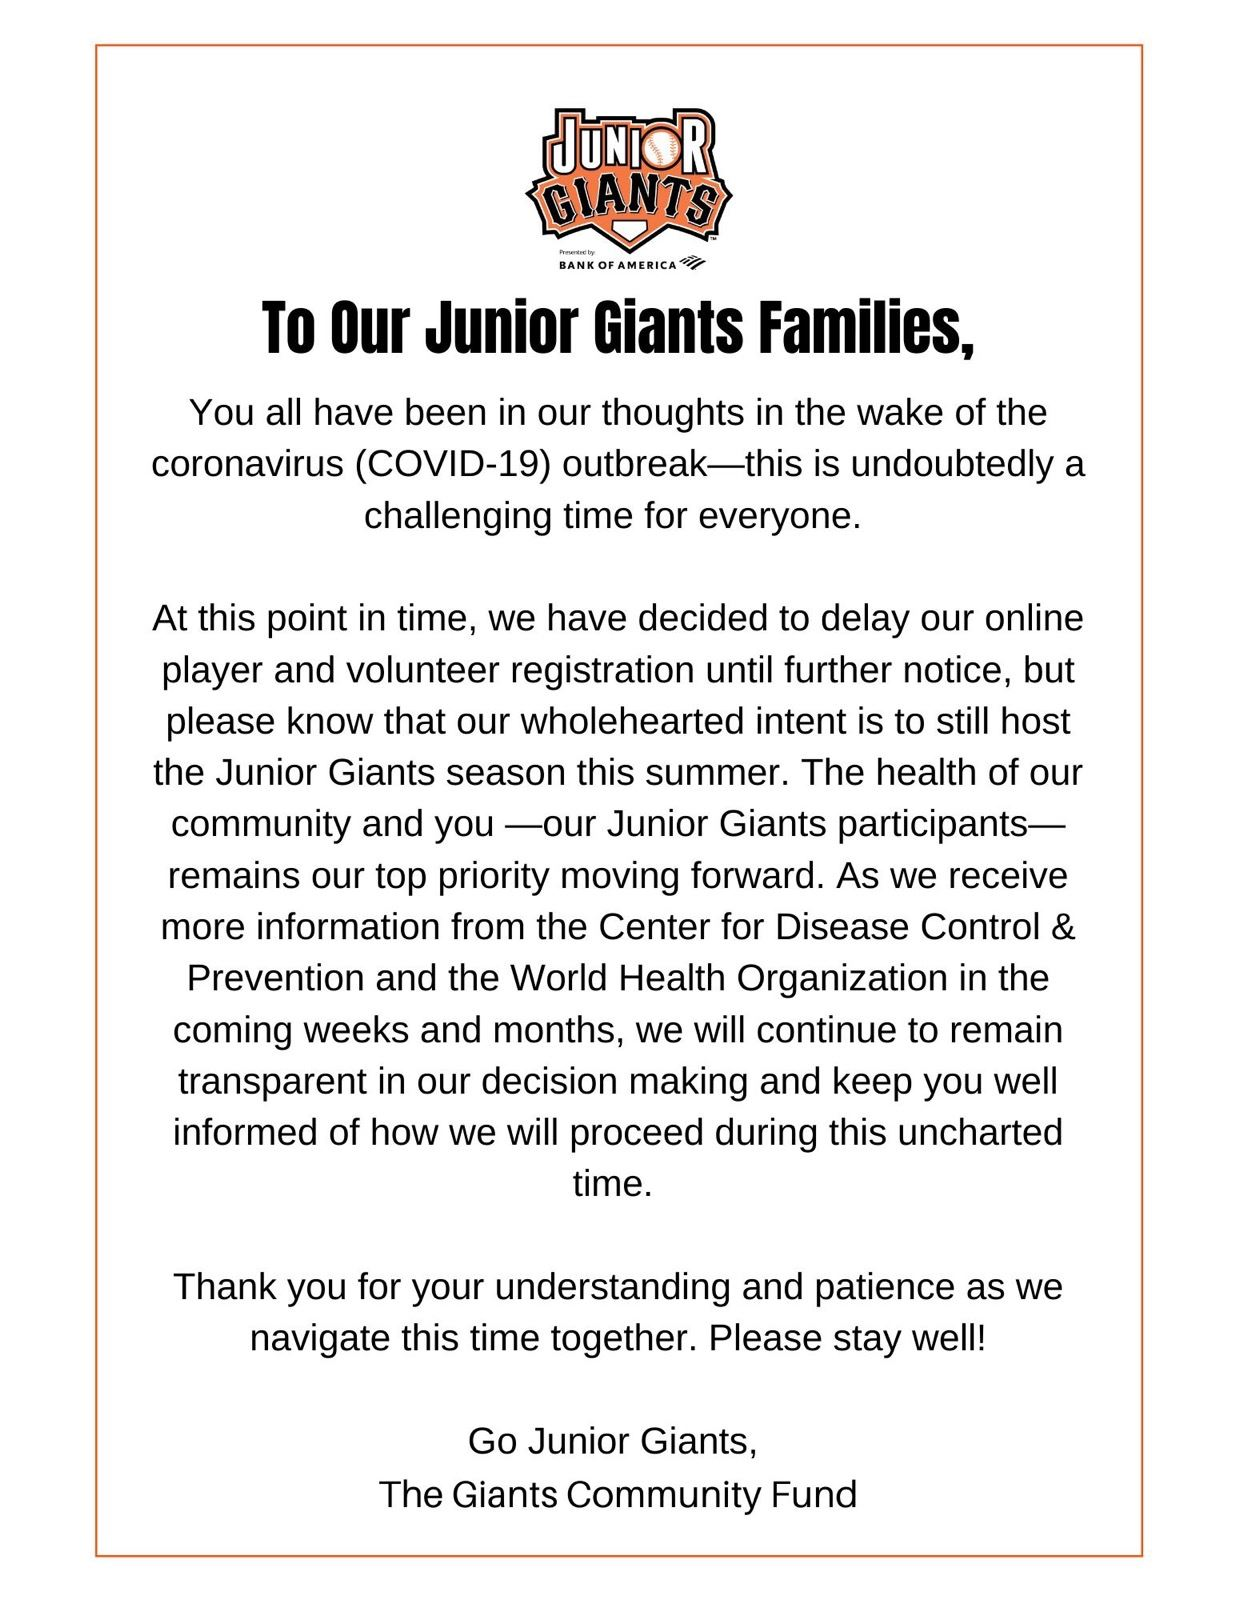 junior-giants-coronavirus